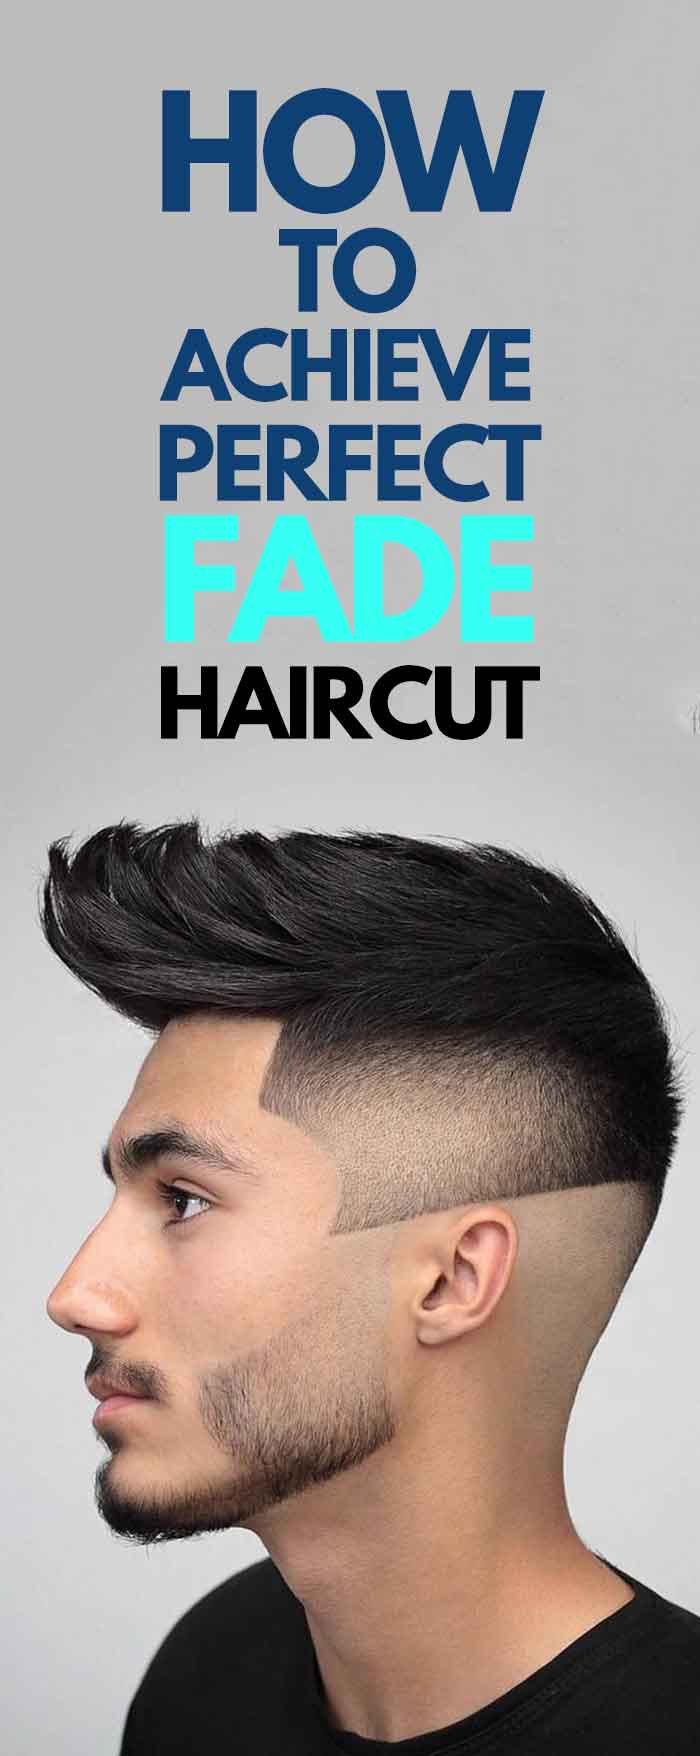 How To Achieve A Perfect Fade Hairstyle!